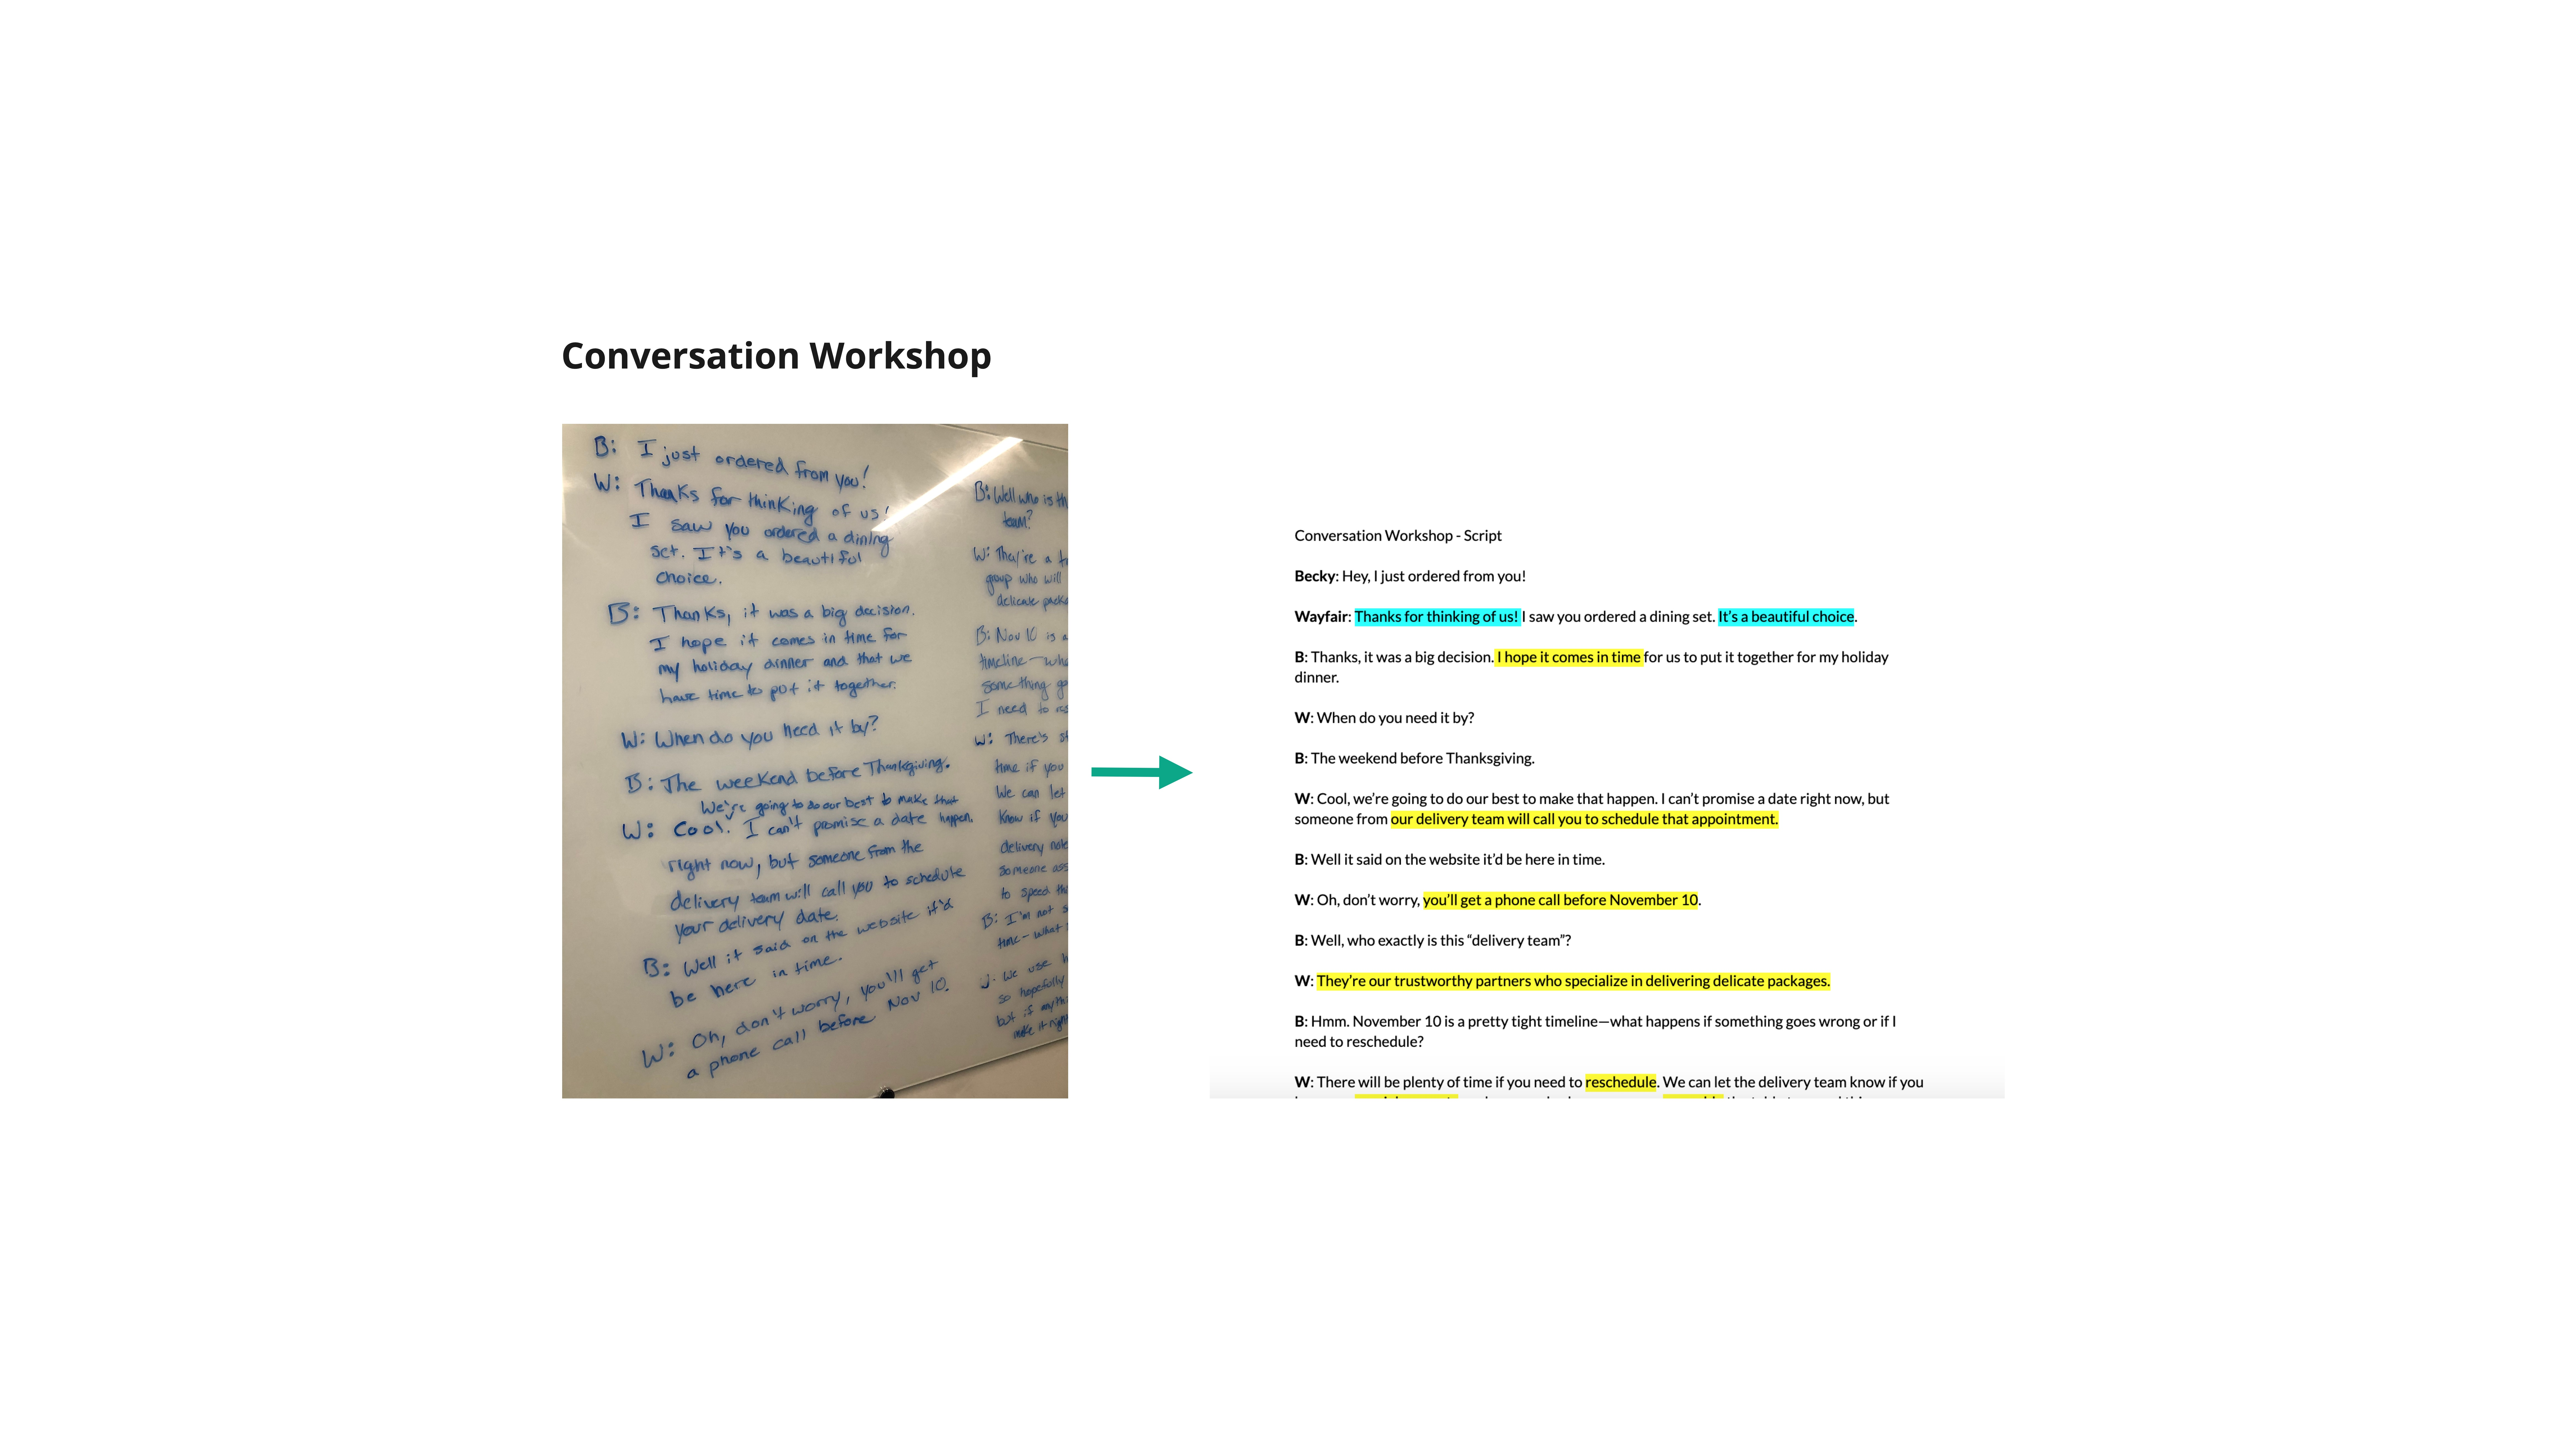 picture of a whiteboard with text and an arrow pointing toward a screenshot from a word document of a script